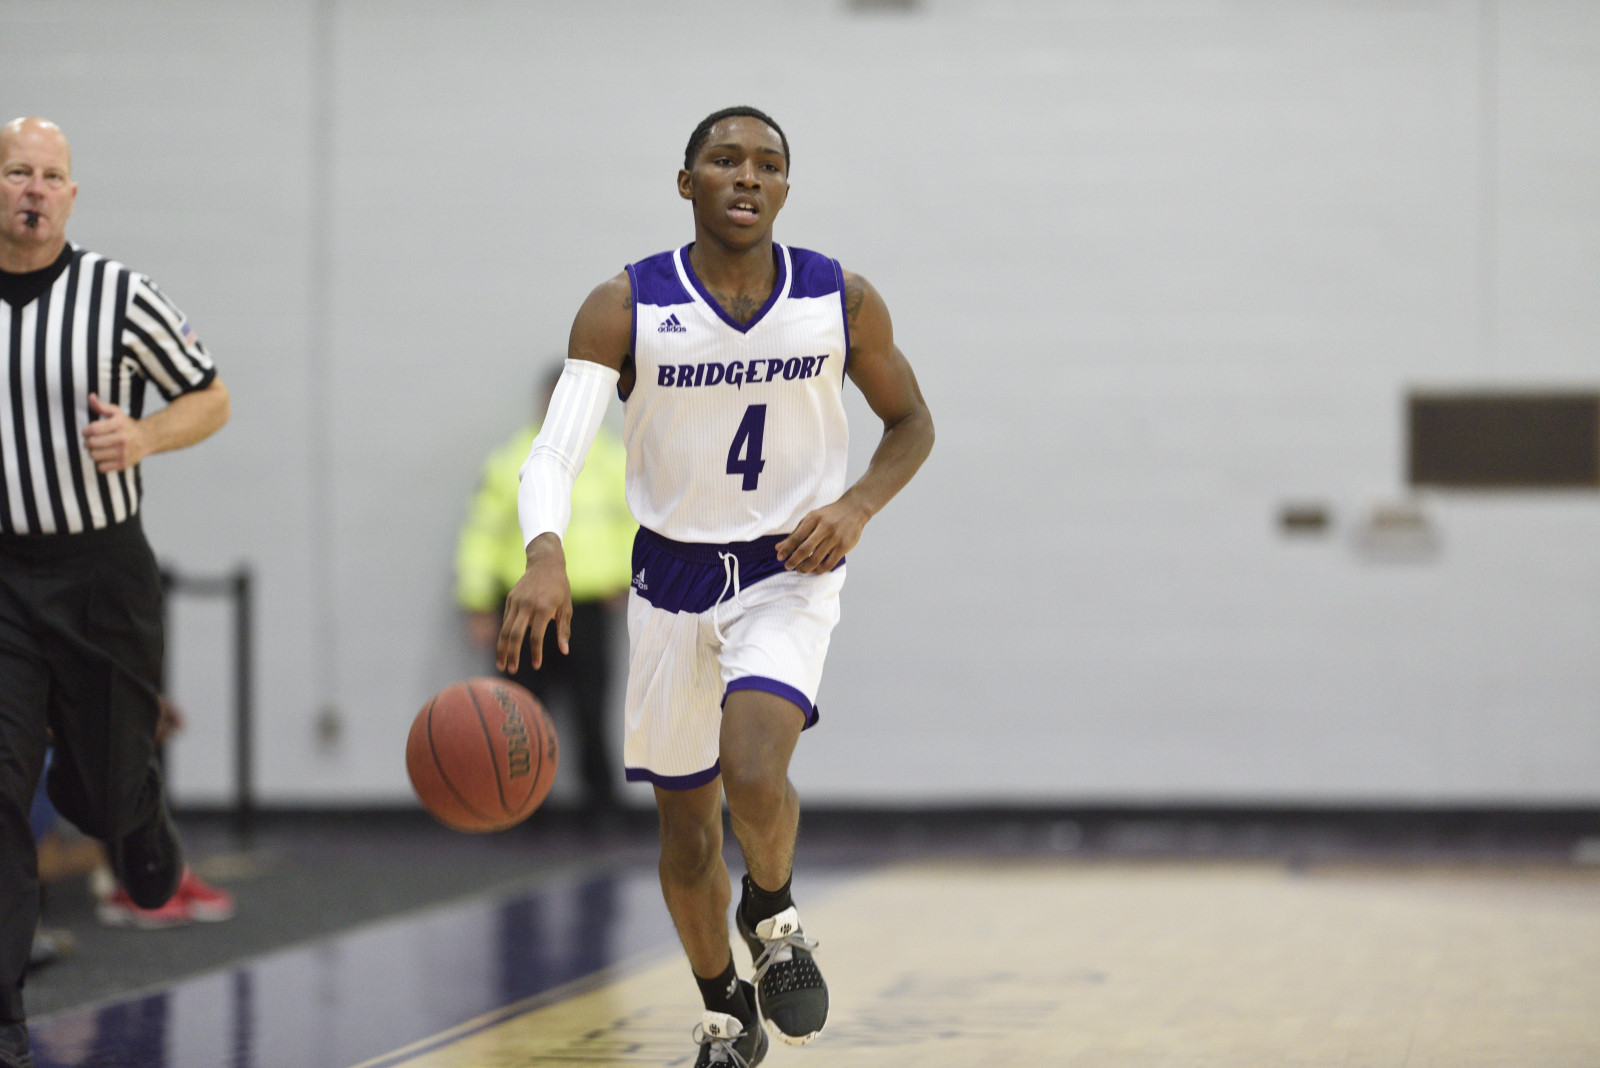 Purple Knights Open ECC Men's Basketball Slate With Hard-Fought 88-72 Home Win Over UDC